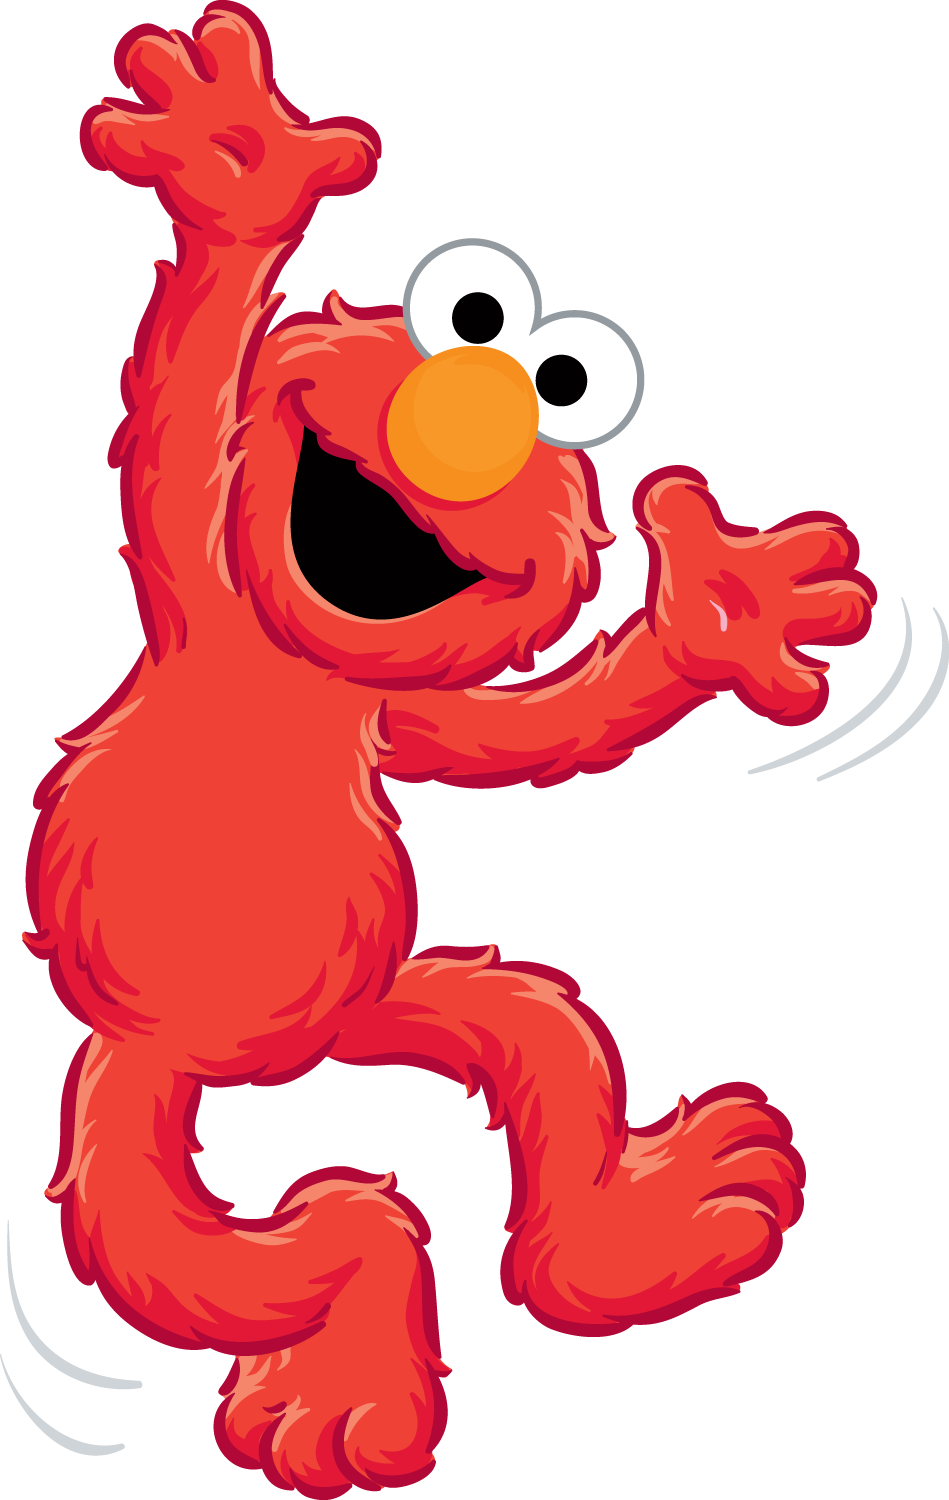 949x1500 8 images elmo. Free cliparts Clipart Panda